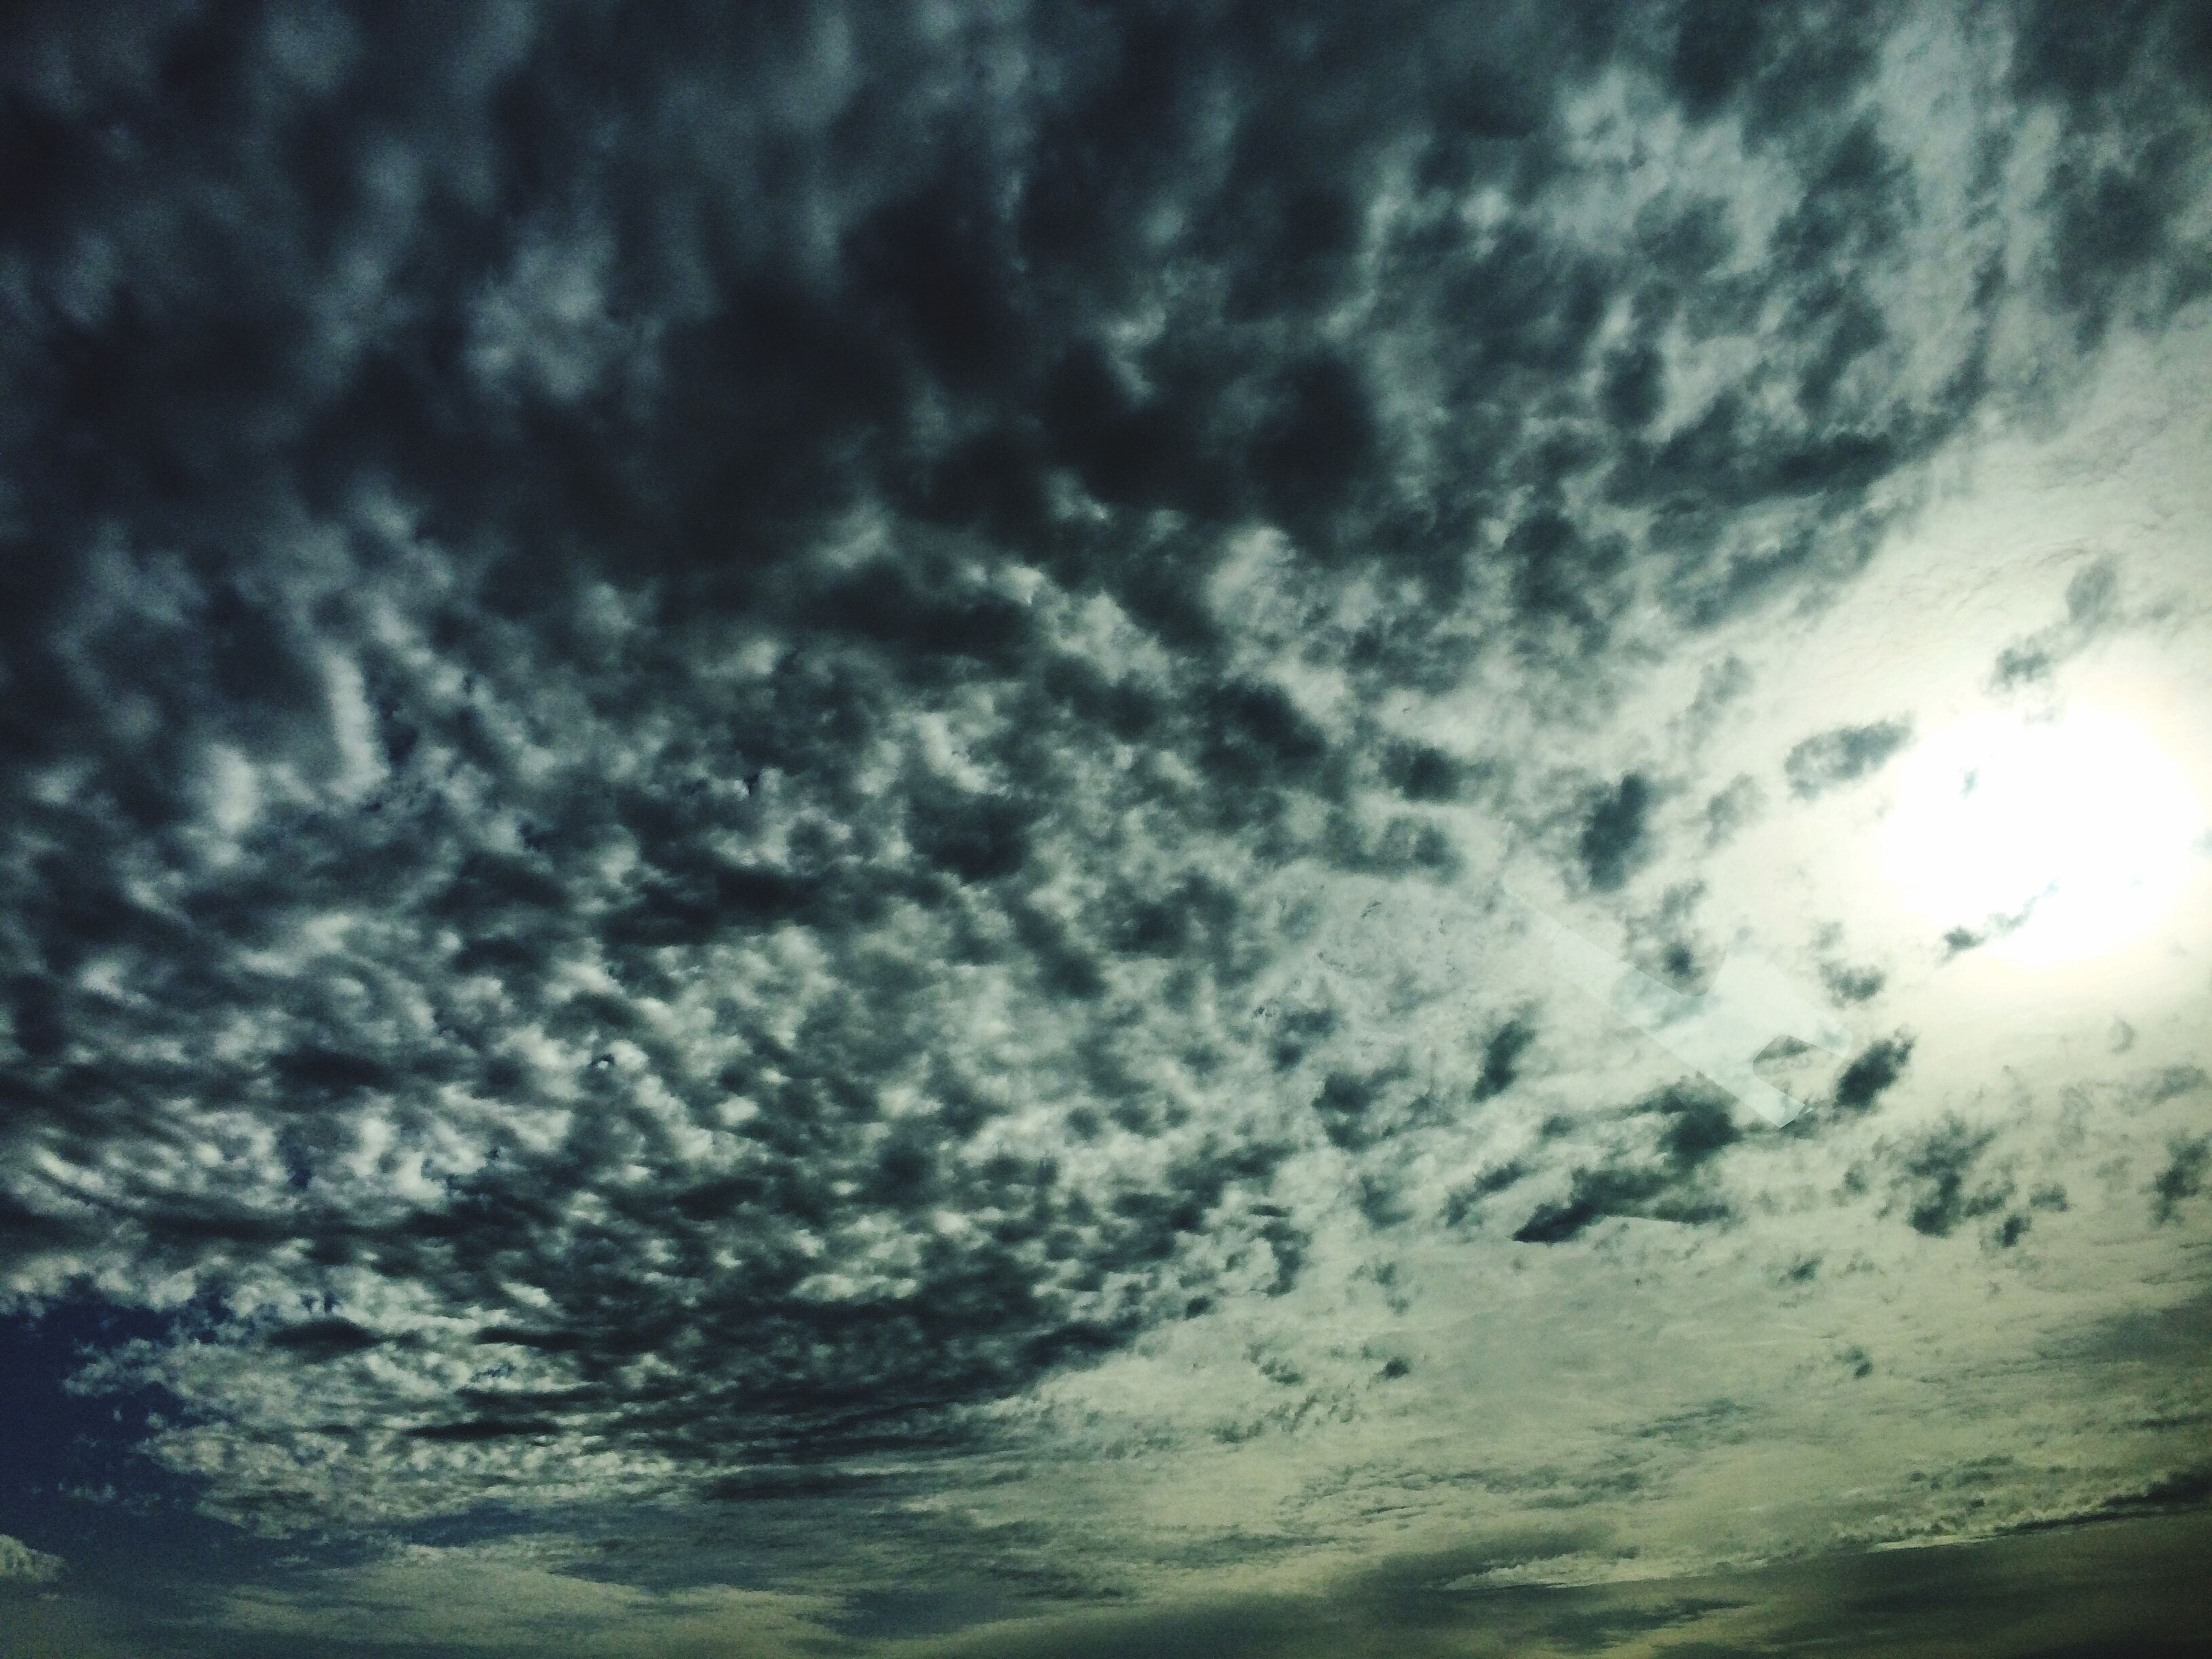 sky, cloud - sky, cloudy, beauty in nature, low angle view, tranquility, scenics, tranquil scene, nature, weather, cloudscape, cloud, overcast, idyllic, sky only, backgrounds, outdoors, storm cloud, dramatic sky, no people